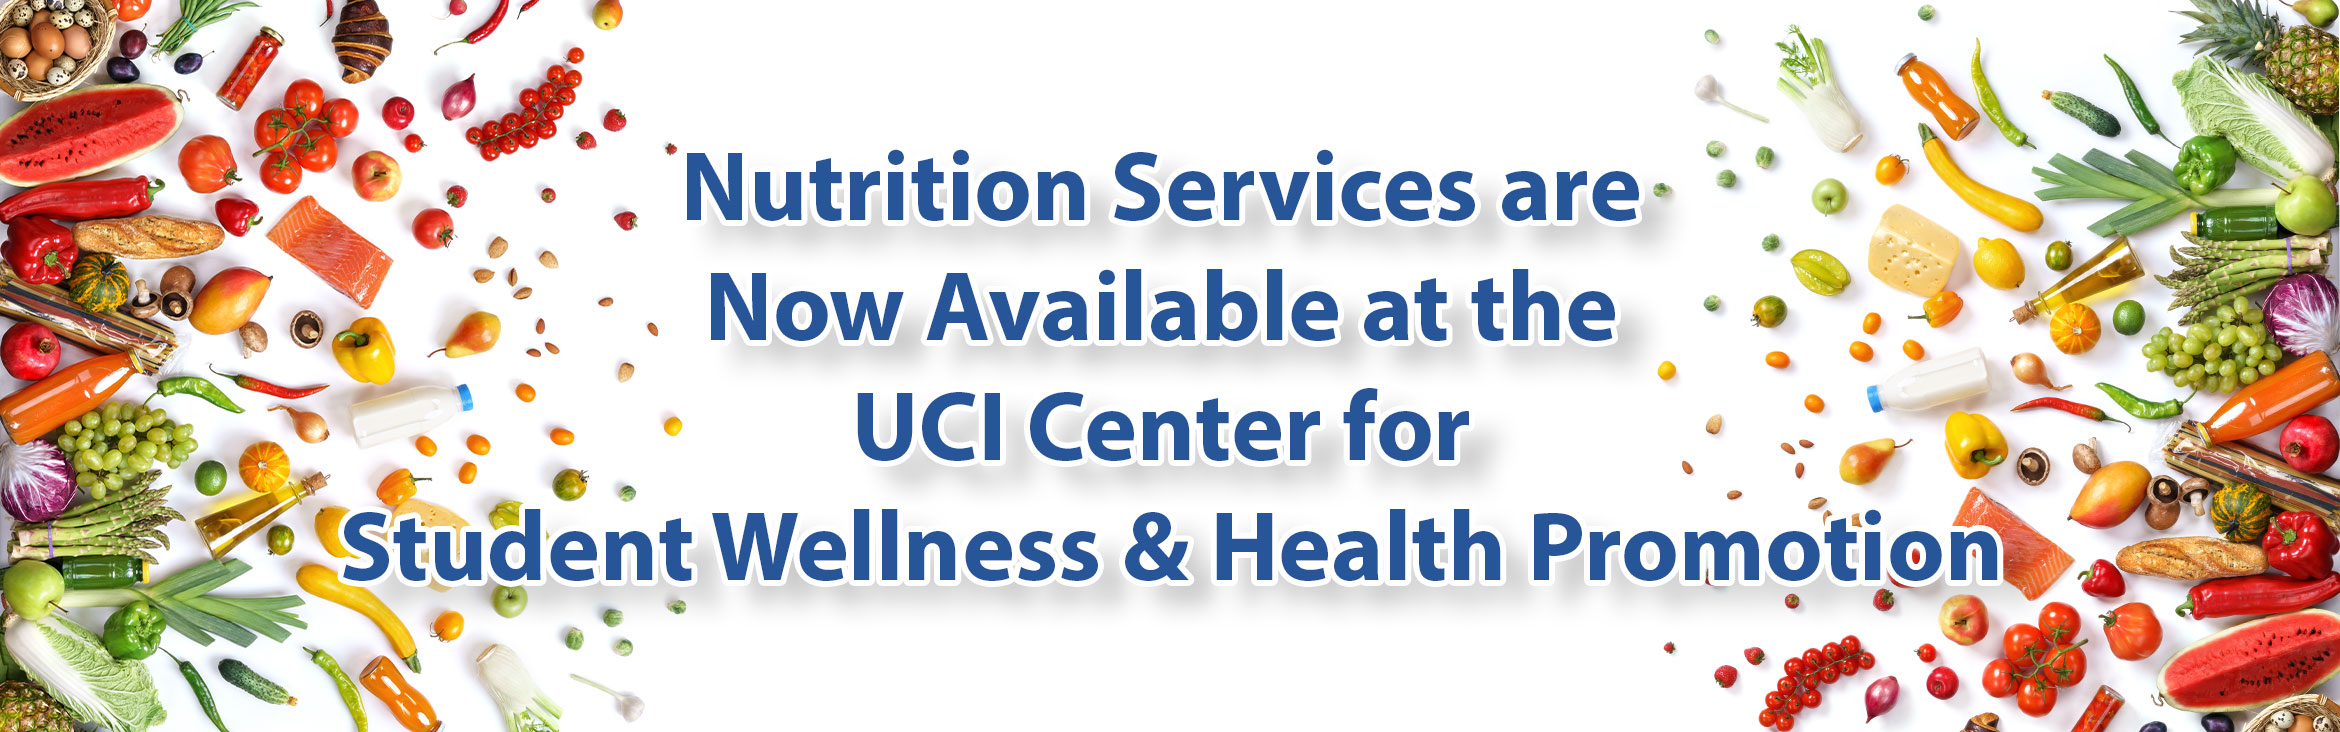 Nutritional Services are now available at the UCI Center for Student Wellness & Health Promotion